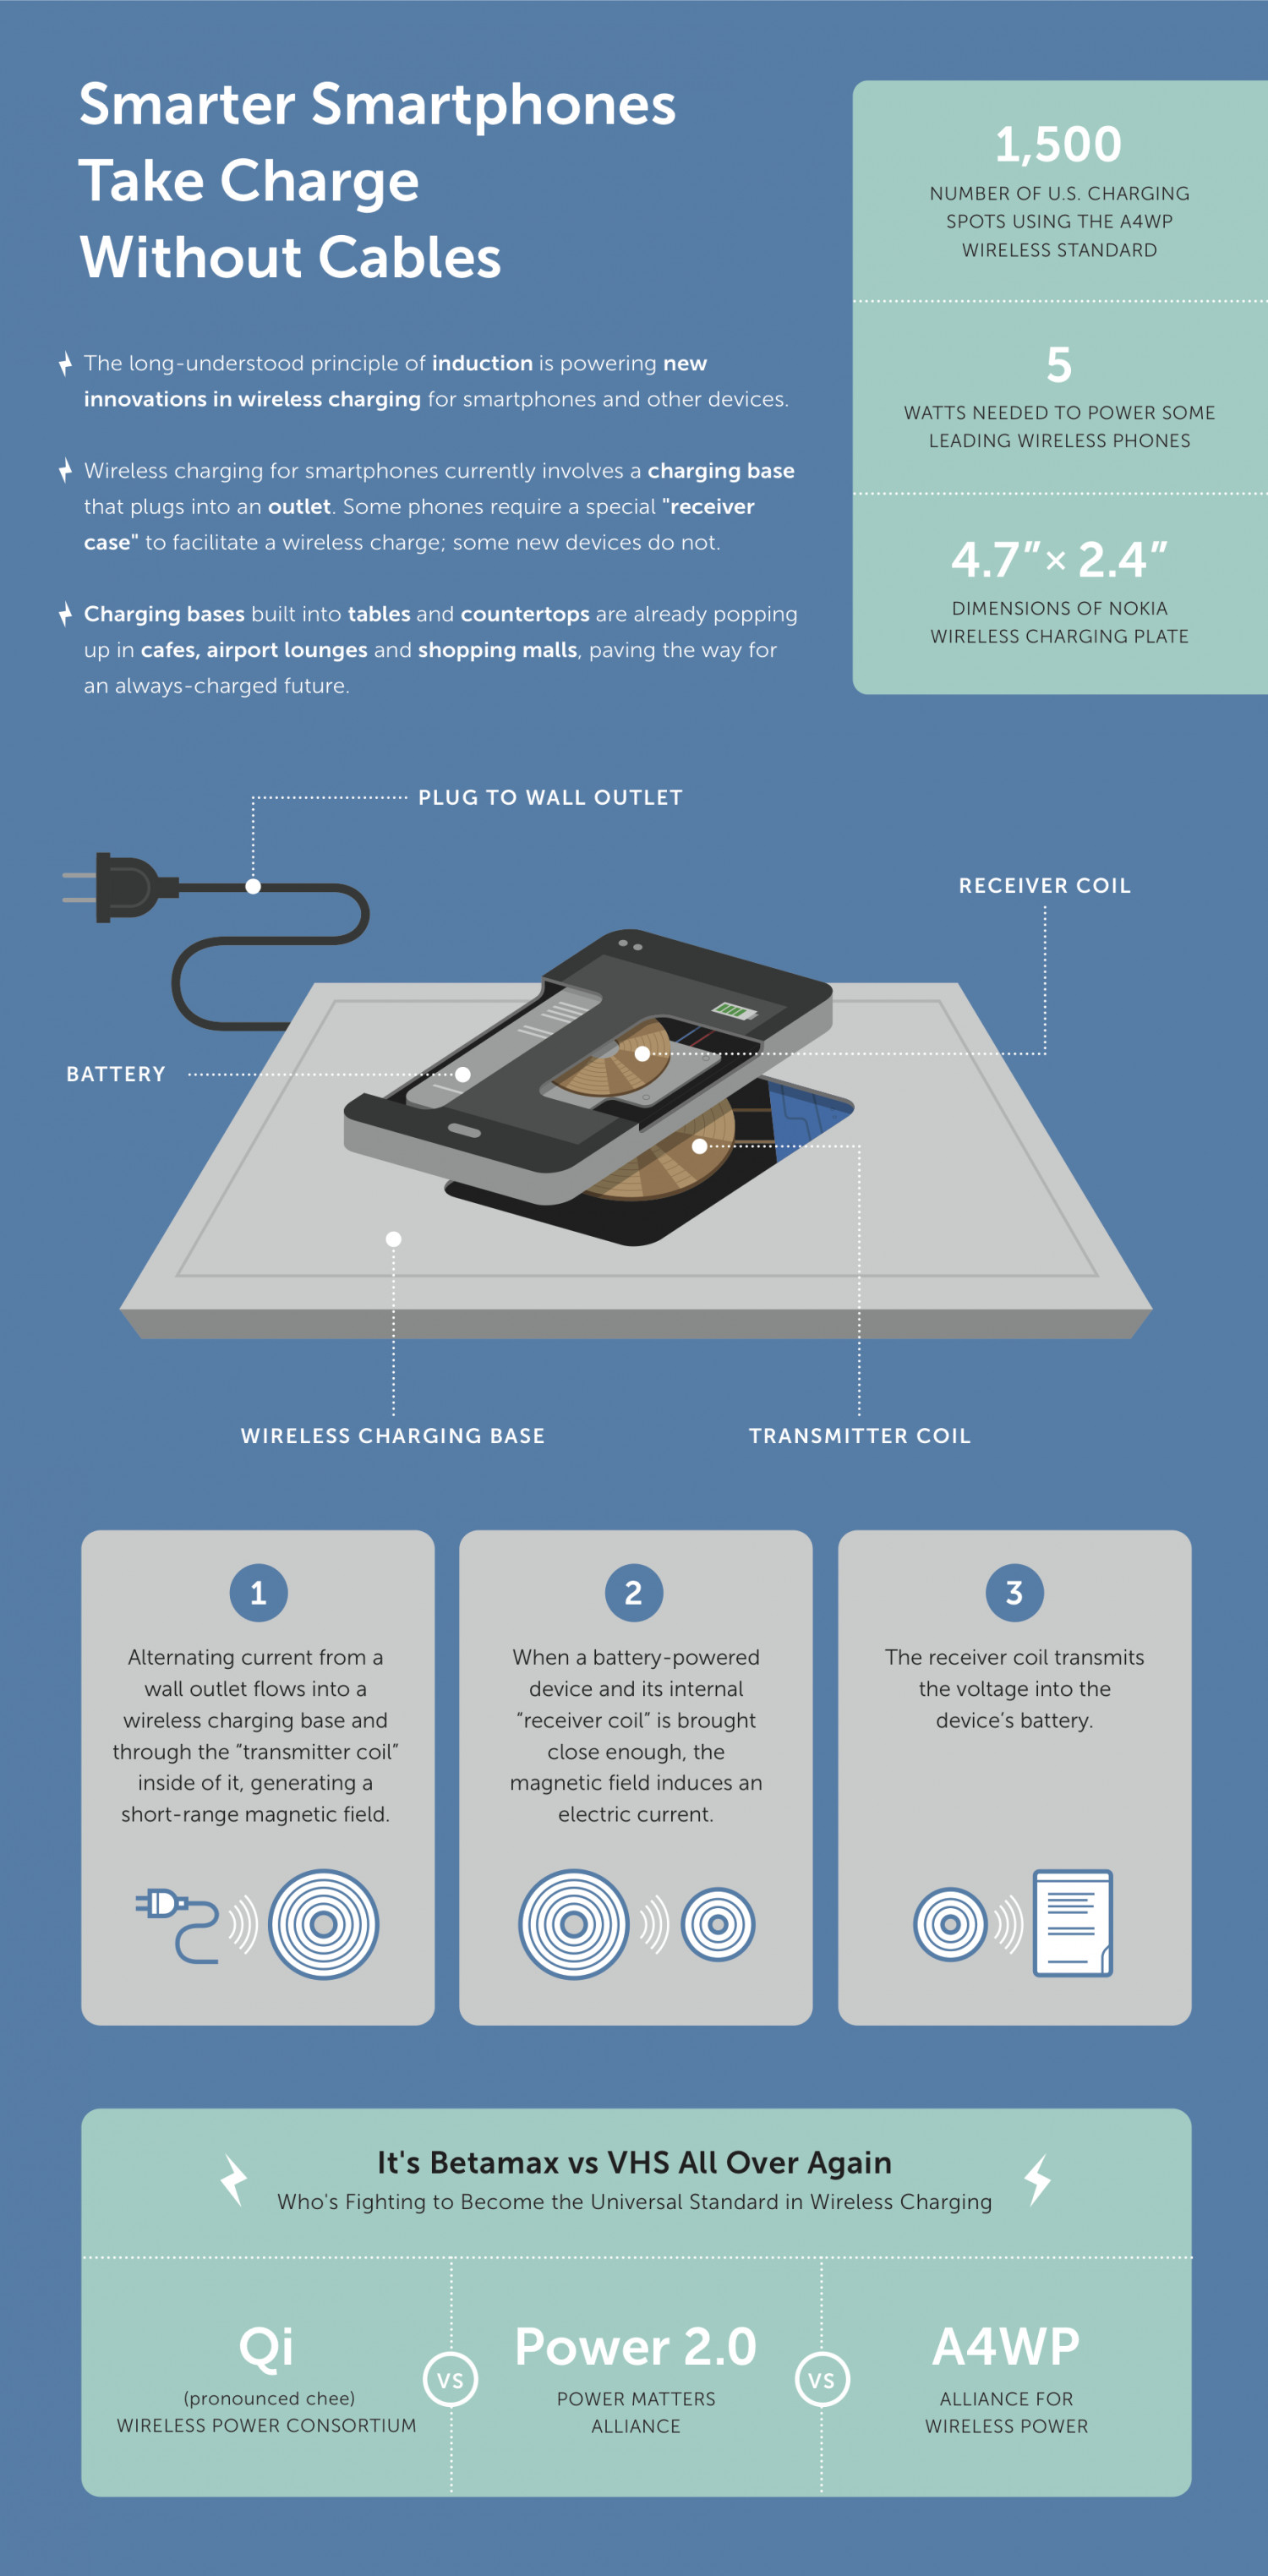 Smarter Smartphones Take Charge Without Cables Infographic